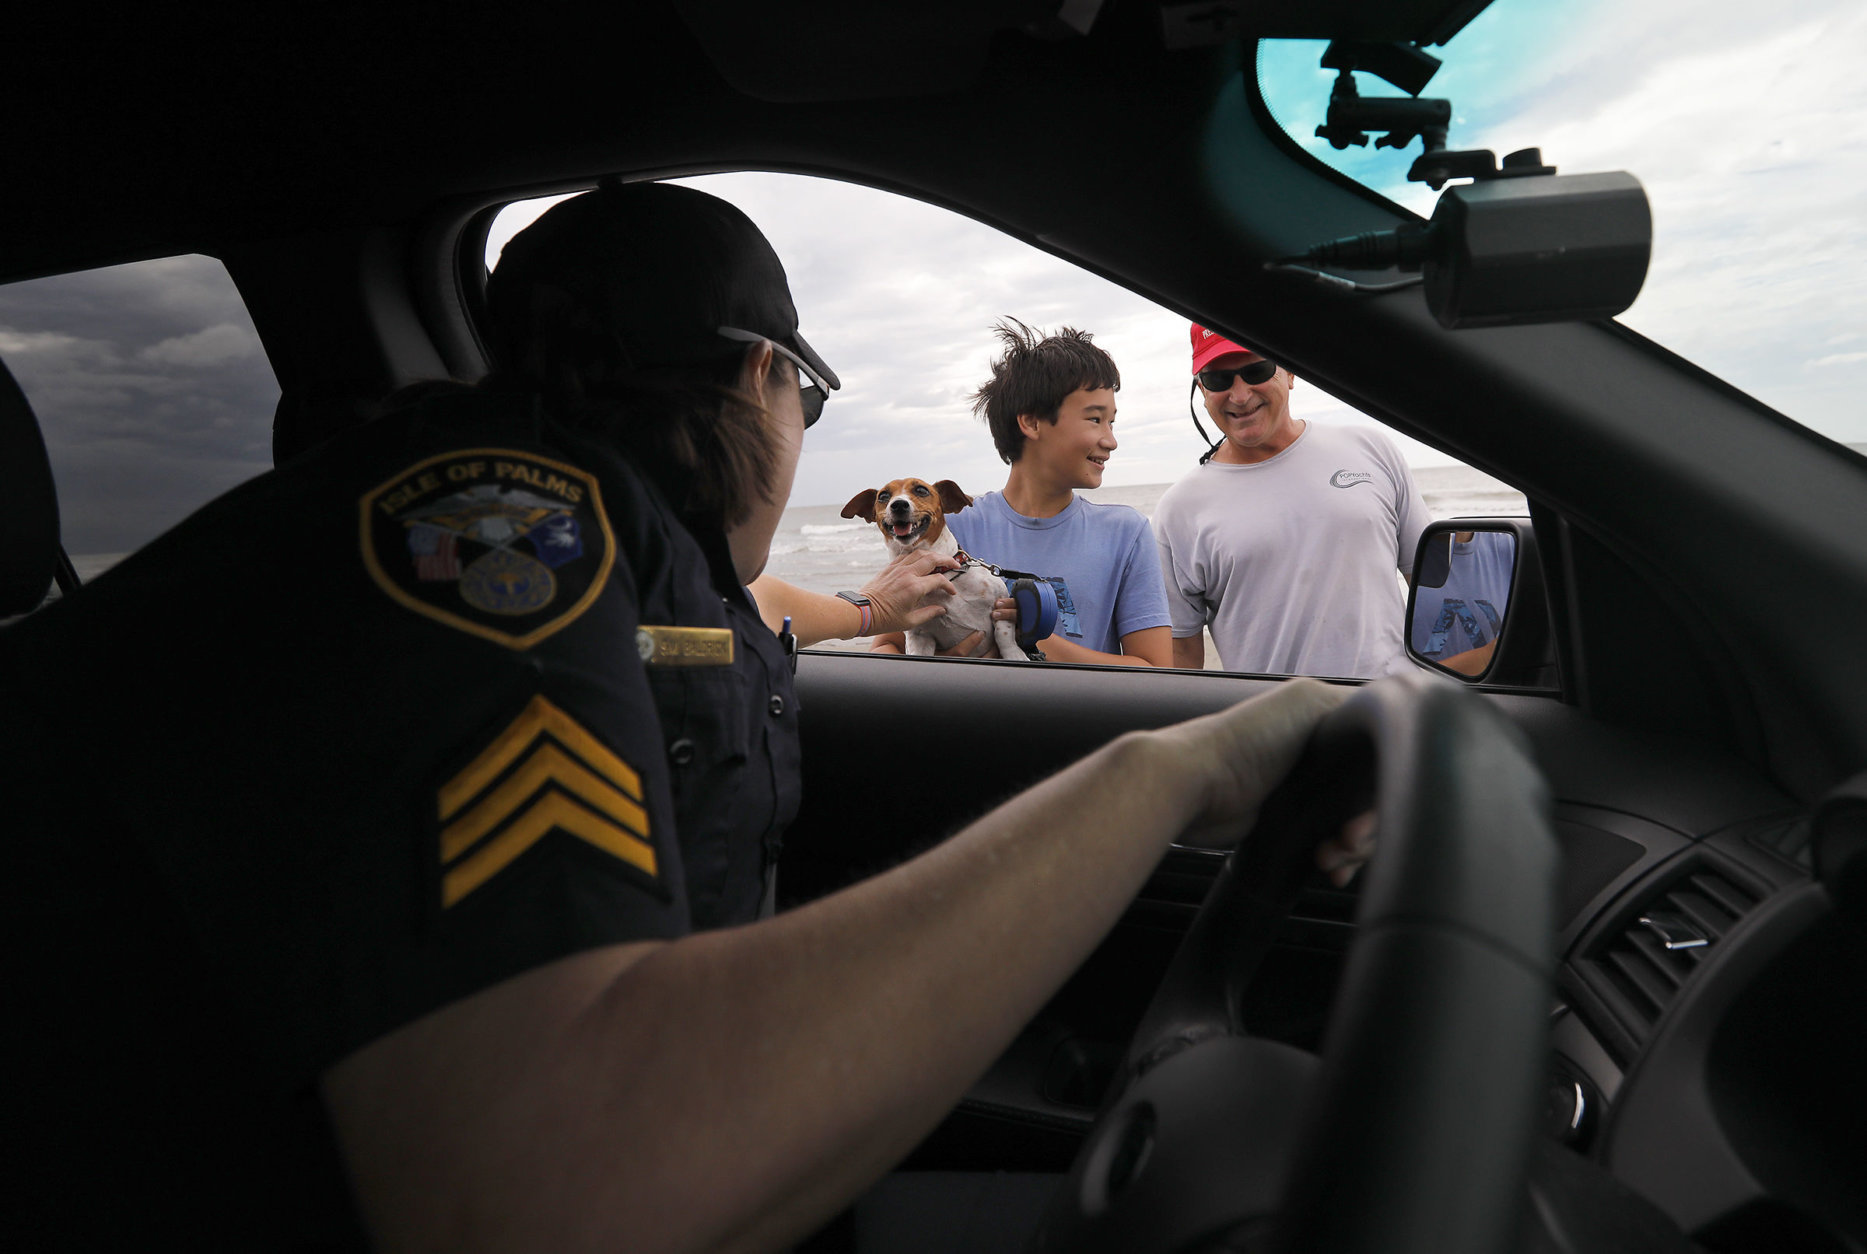 Isle of Palms police officer Detective Sergeant Sharon Baldrick speaks with Isle of Palms residents James Sireci, at right, and his son Aaron as she pets their family dog, Allie, on the Isle of Palms, S.C., as Hurricane Florence moves ashore near Wilmington, N.C., Friday, Sept. 14, 2018. (AP Photo/Mic Smith)